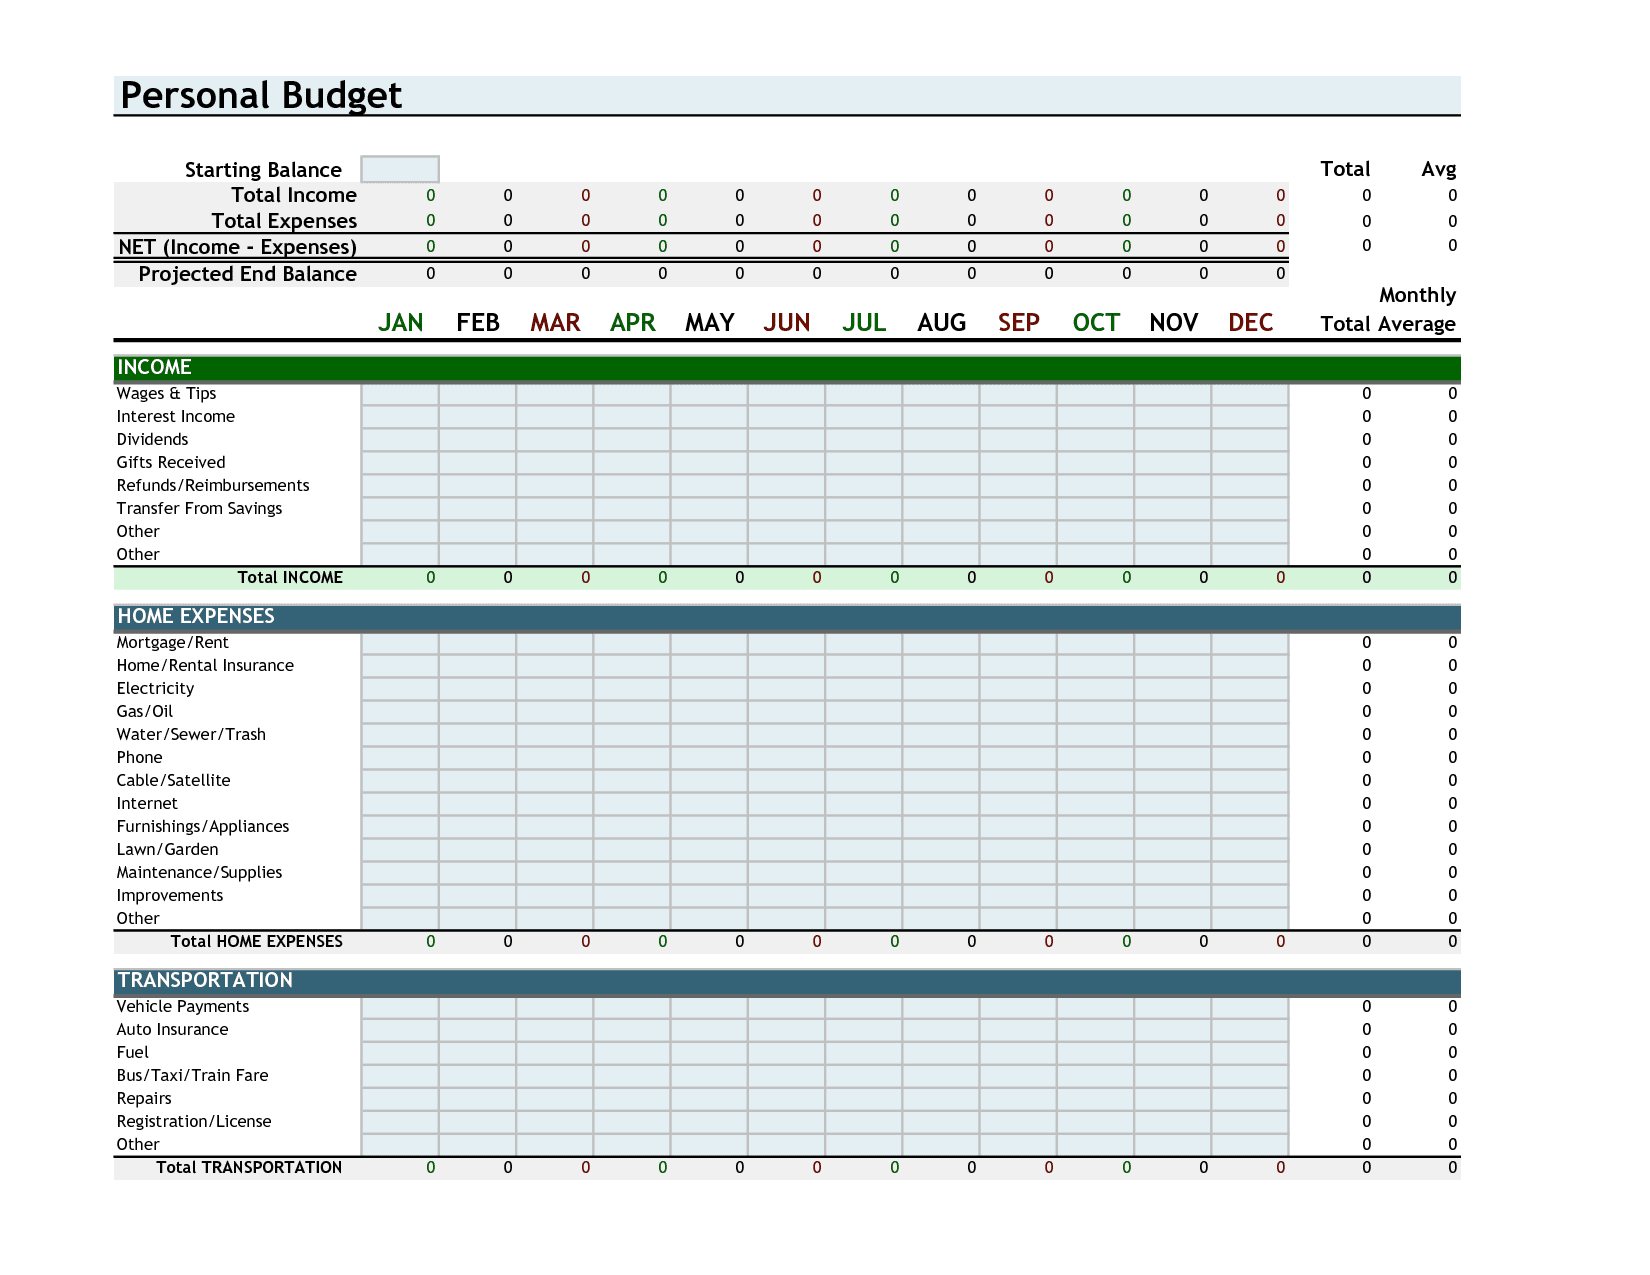 Running Budget Template Personal Finance Spreadsheet Template Spreadsheet Templates for Busines Spreadsheet Templates for Busines Free Budget Templates For Excel